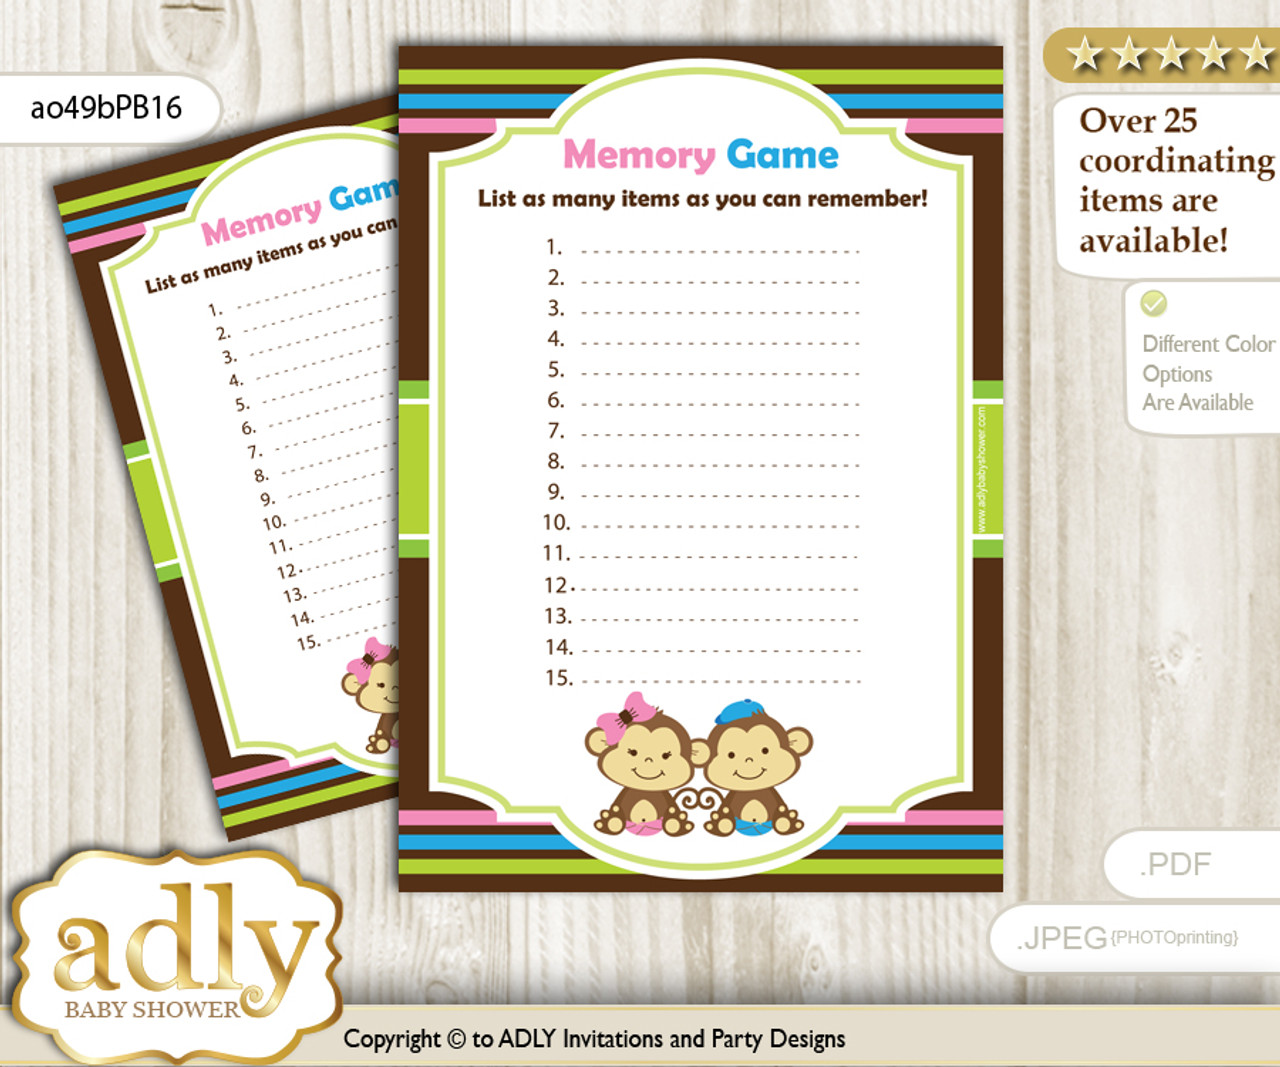 graphic about Baby Shower Printable identify Monkeys Lady Boy Memory Recreation Card for Youngster Shower, Printable Bet Card, Red Blue Environmentally friendly, Twins